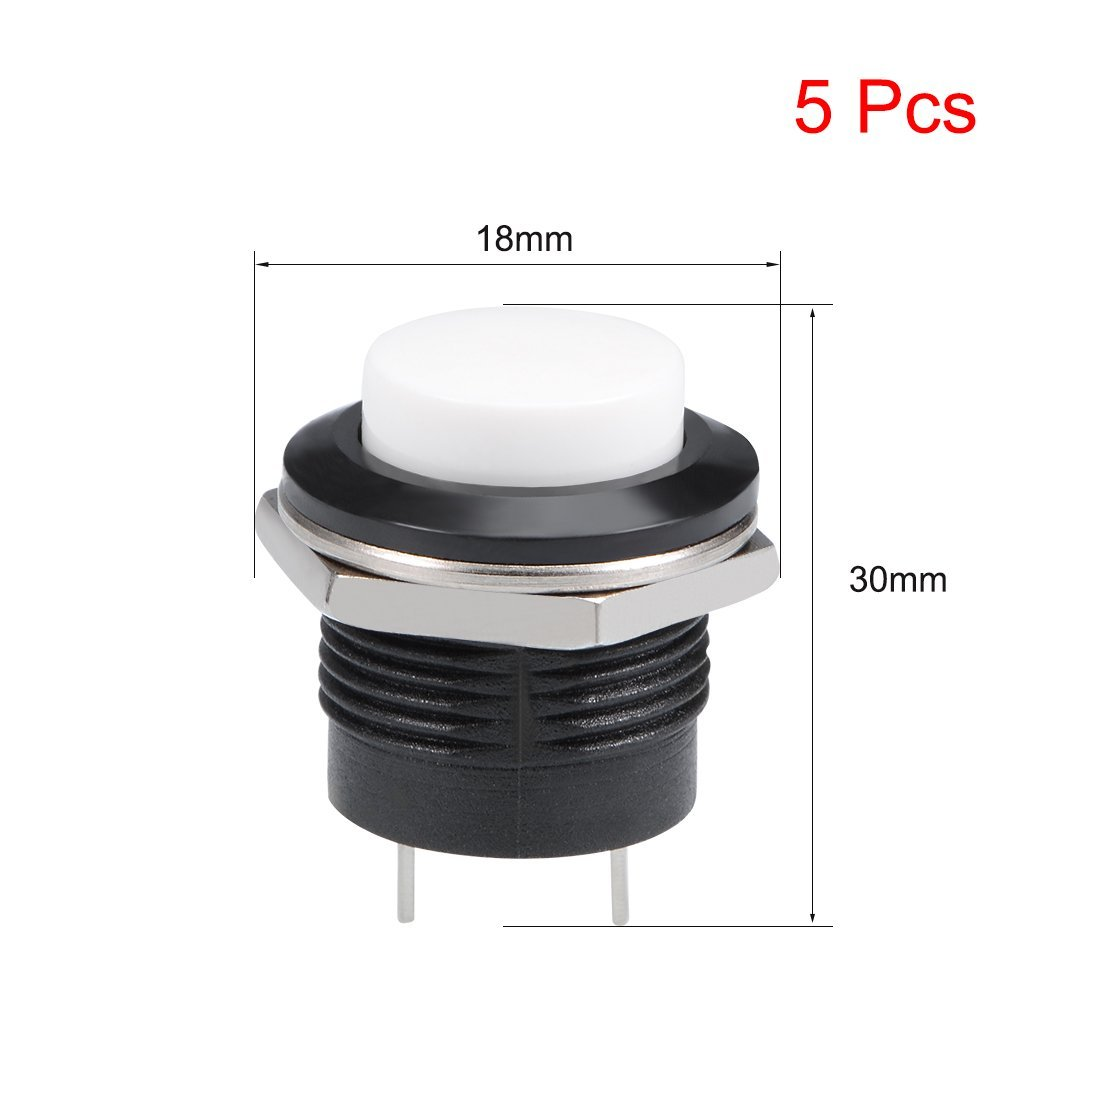 uxcell 5Pcs,16mm White Momentary Push Button Switch Round Raised Button R13-507 SPST 1 NO 1 NC